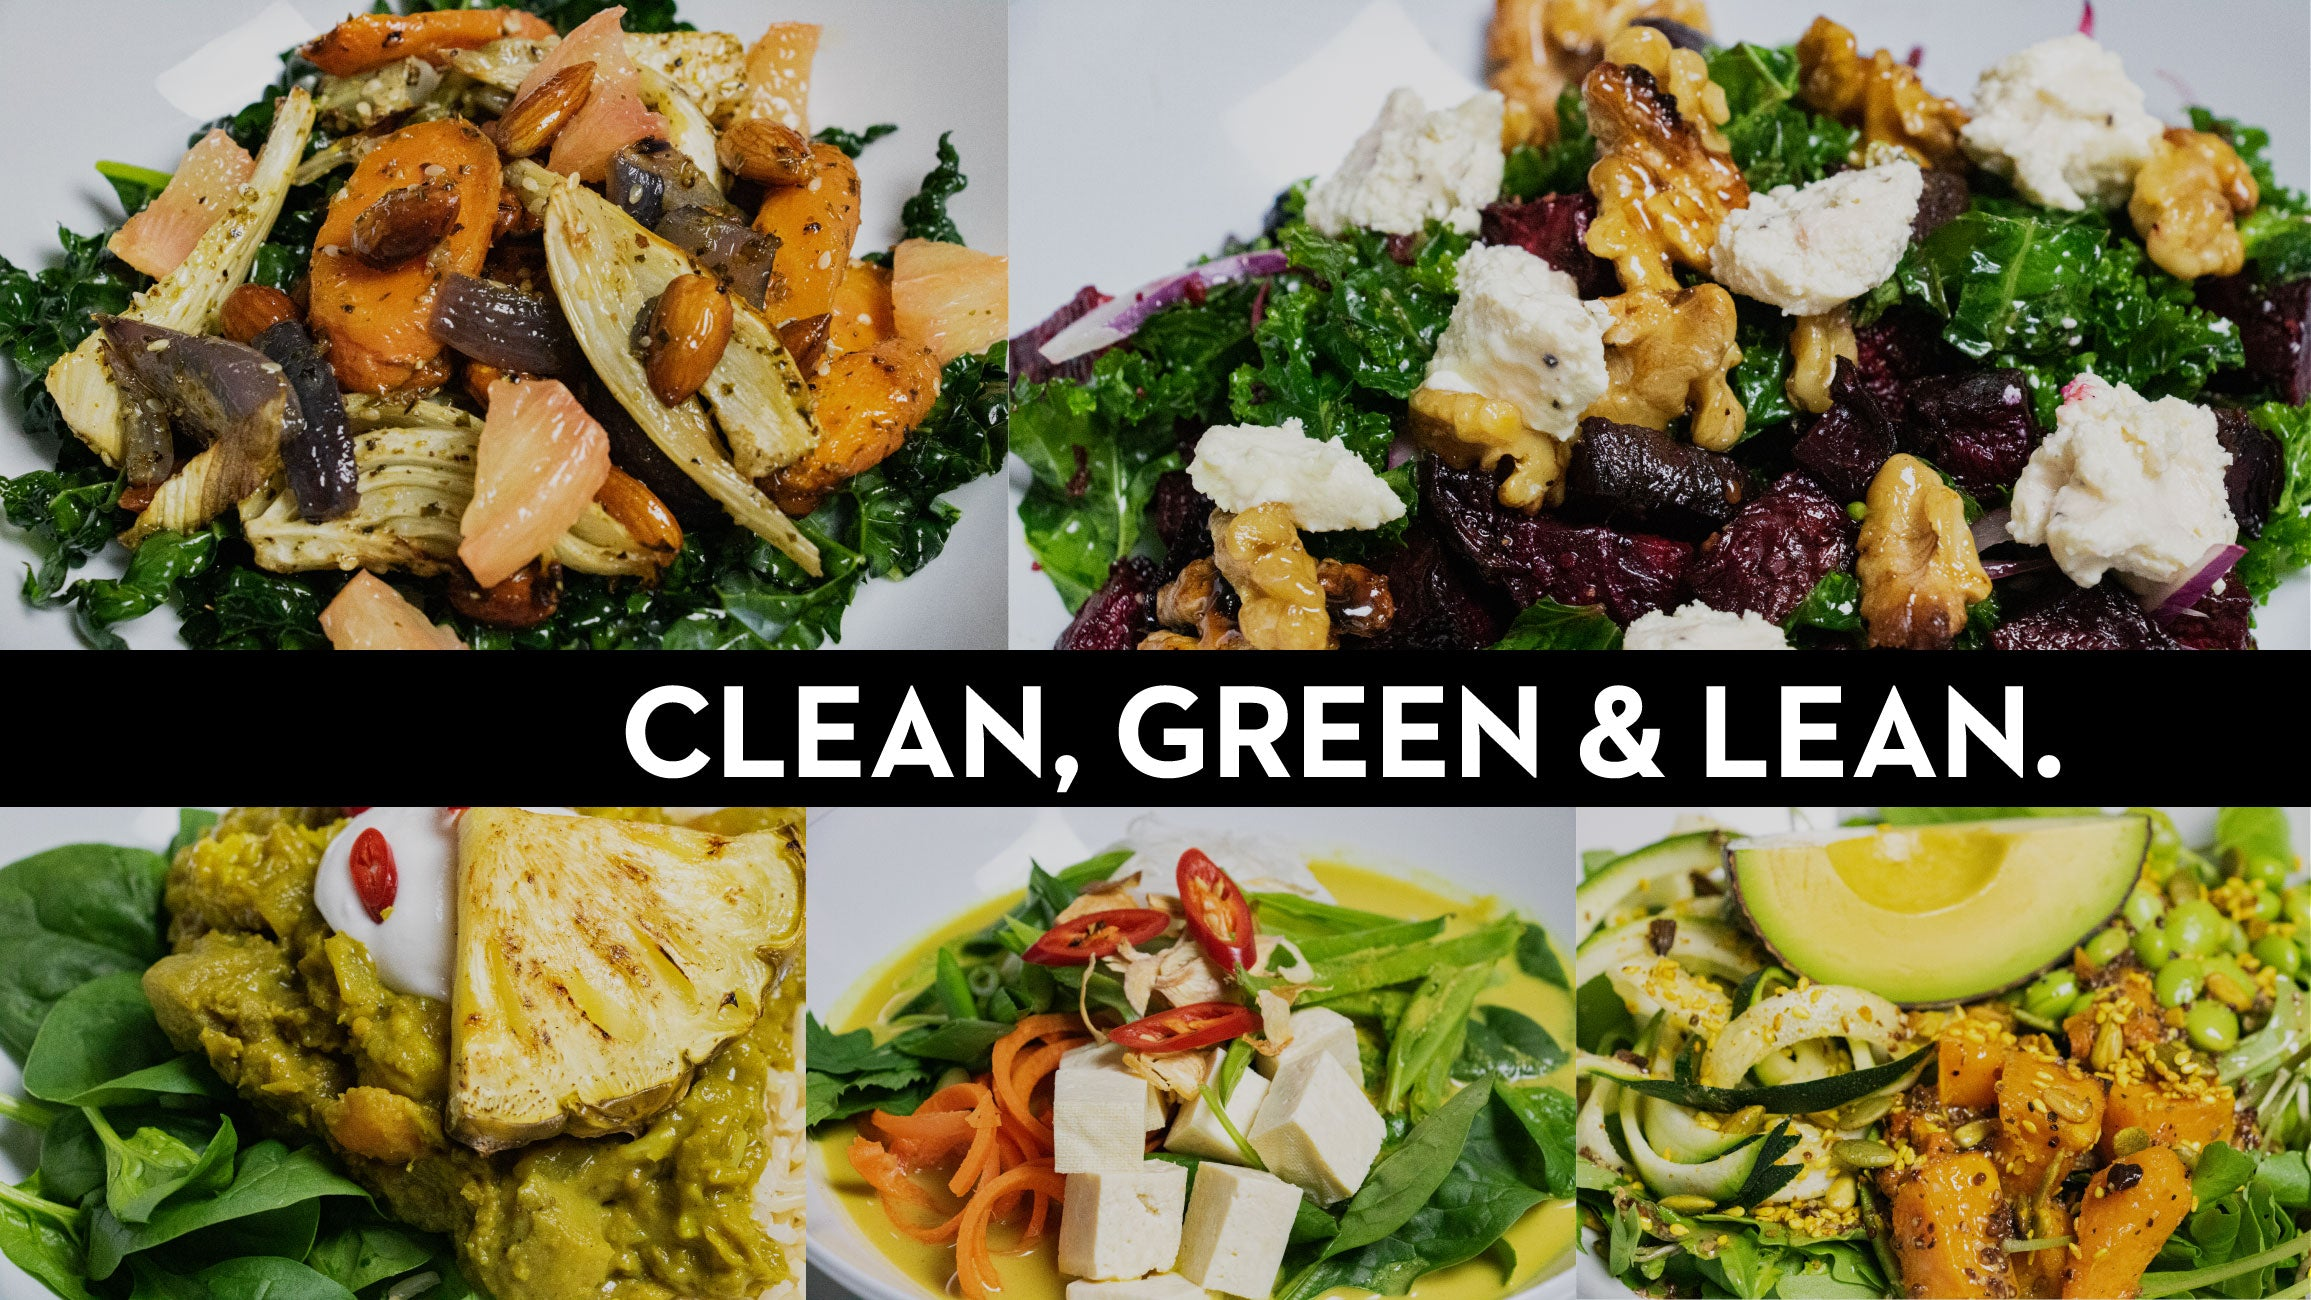 CLEAN, GREEN & LEAN PROGRAM